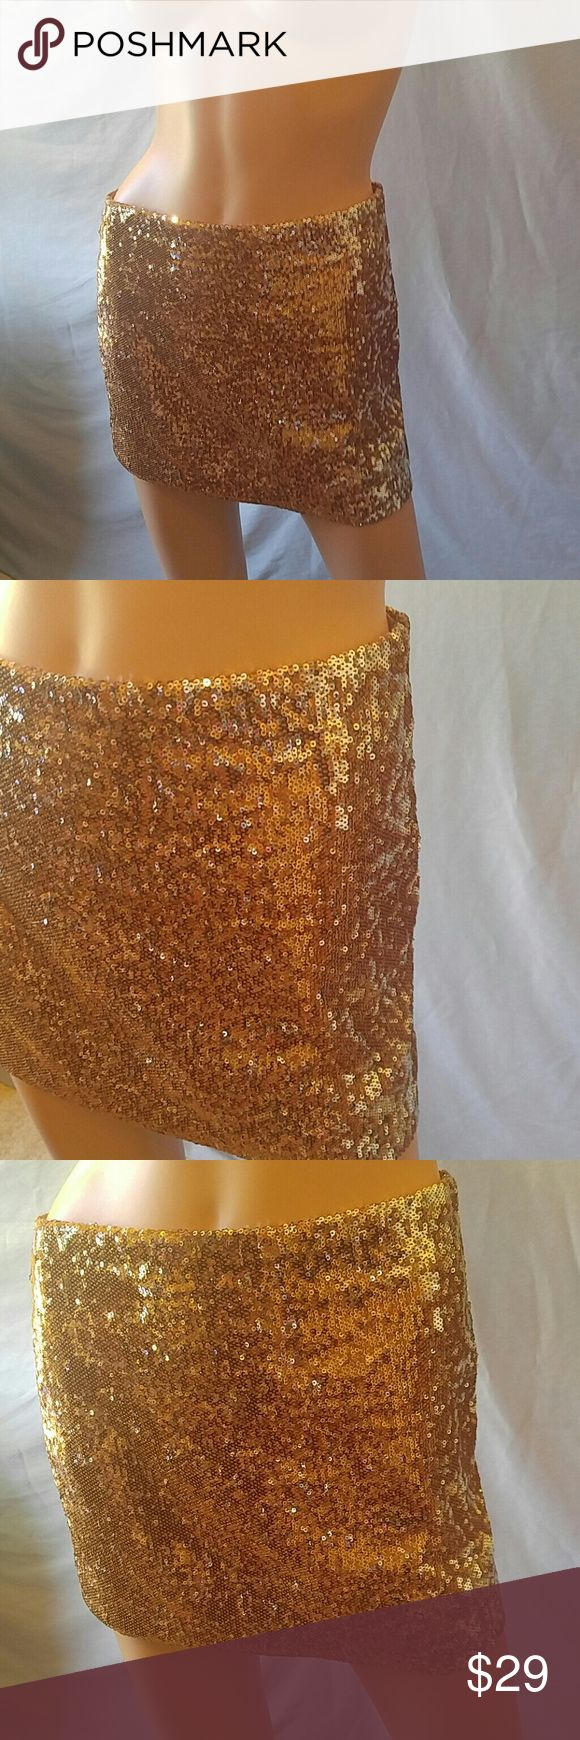 🌟Gold Sequin Skirt! WOW!!! CLOSET CLEAROUT SALE: $6 or 4 for $20 (anything $6 or less) $9 or 3 for $25 (anything $9 or less)  What a fabulous look to go anywhere. Gold mini for special events or just to feel fantastic. Side zip    Why buy from me? 💋Most Items New with tags or worn once 💋Smoke free home  💋TOP 10% Seller  💋TOP RATED 💋 FAST SHIPPER   💋ACCEPT MOST OFFERS 💋BUNDLE DISCOUNT OF 20% 💋Allow EXCHANGES 💋Speedy response for questions  ❤Let me know how I can help & HAPPY…